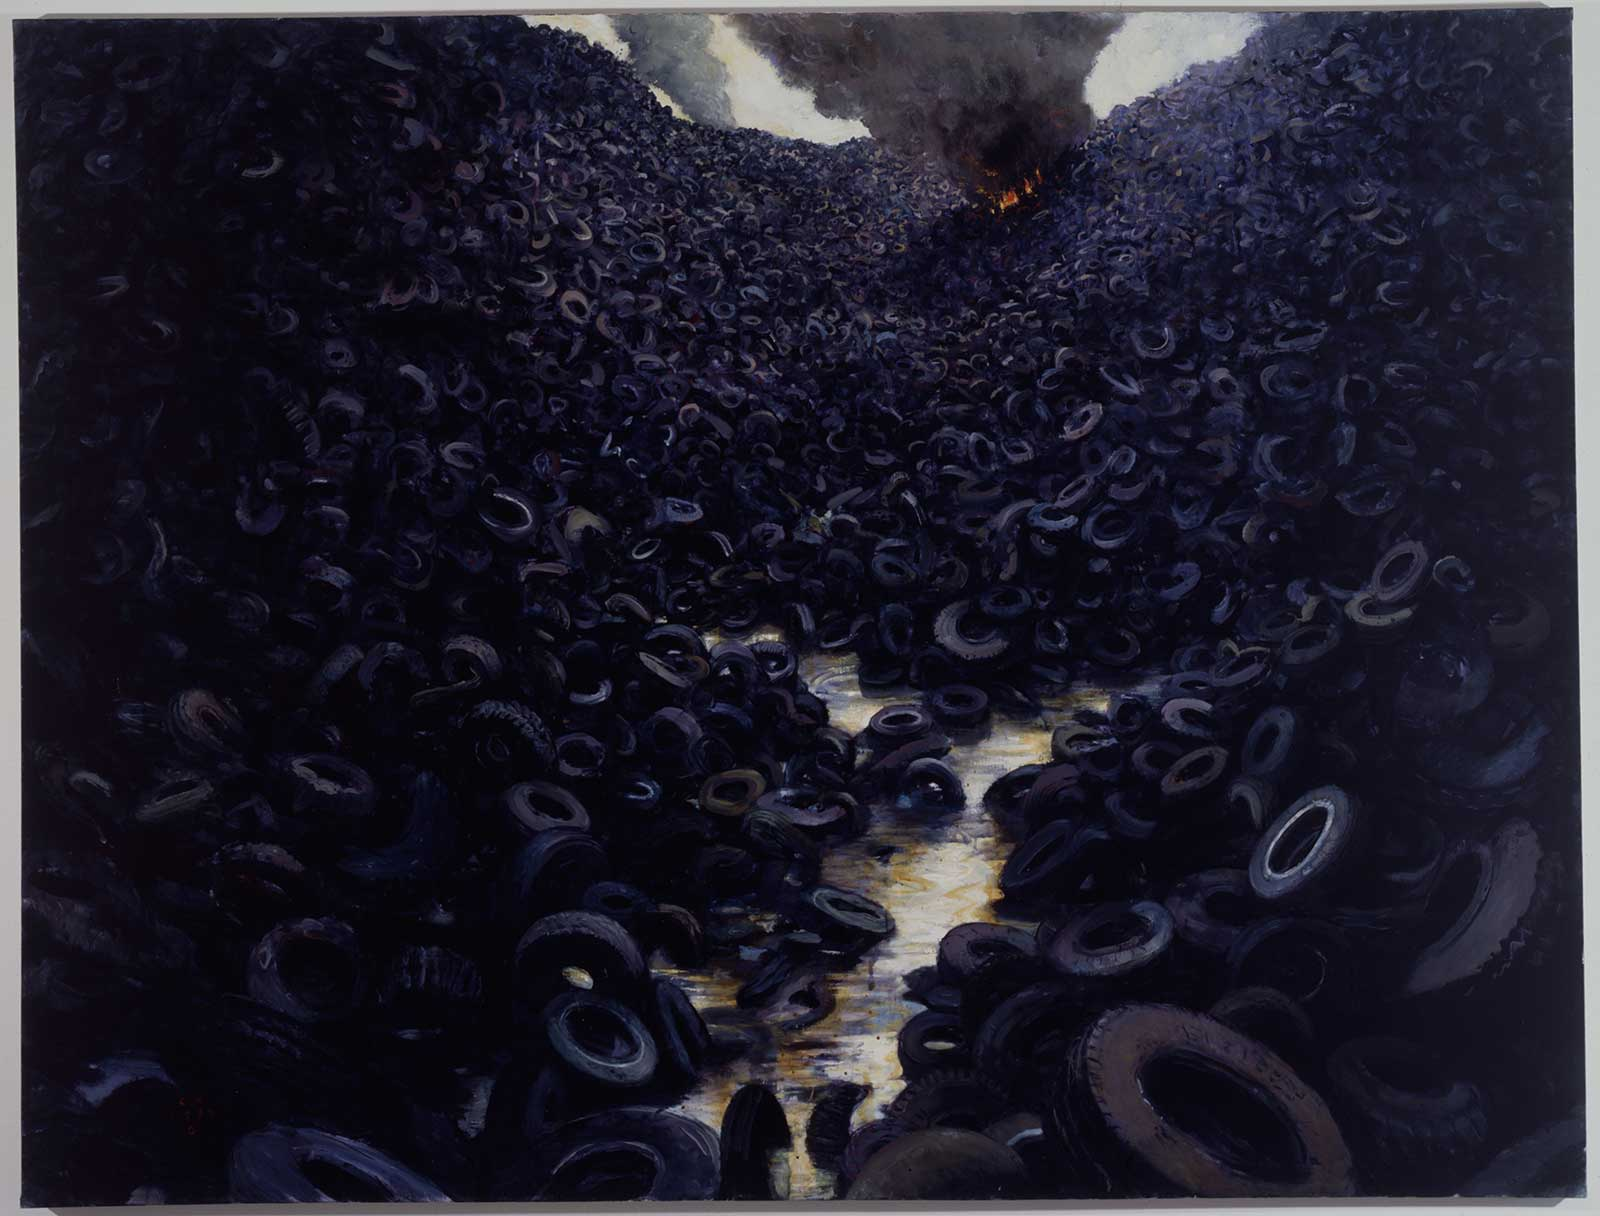 piles of tires with fire